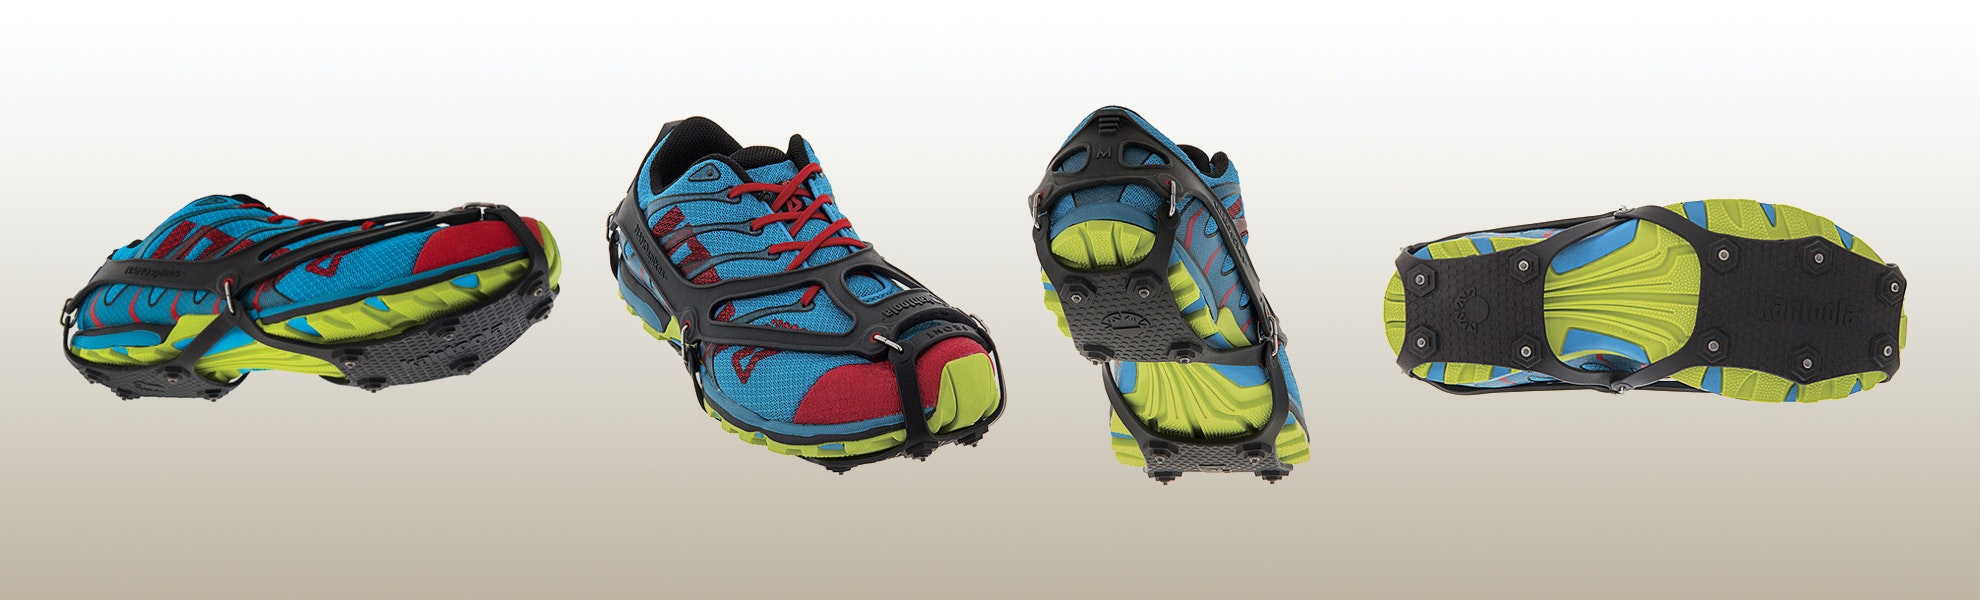 Kahtoola Nanospikes Footwear Traction System